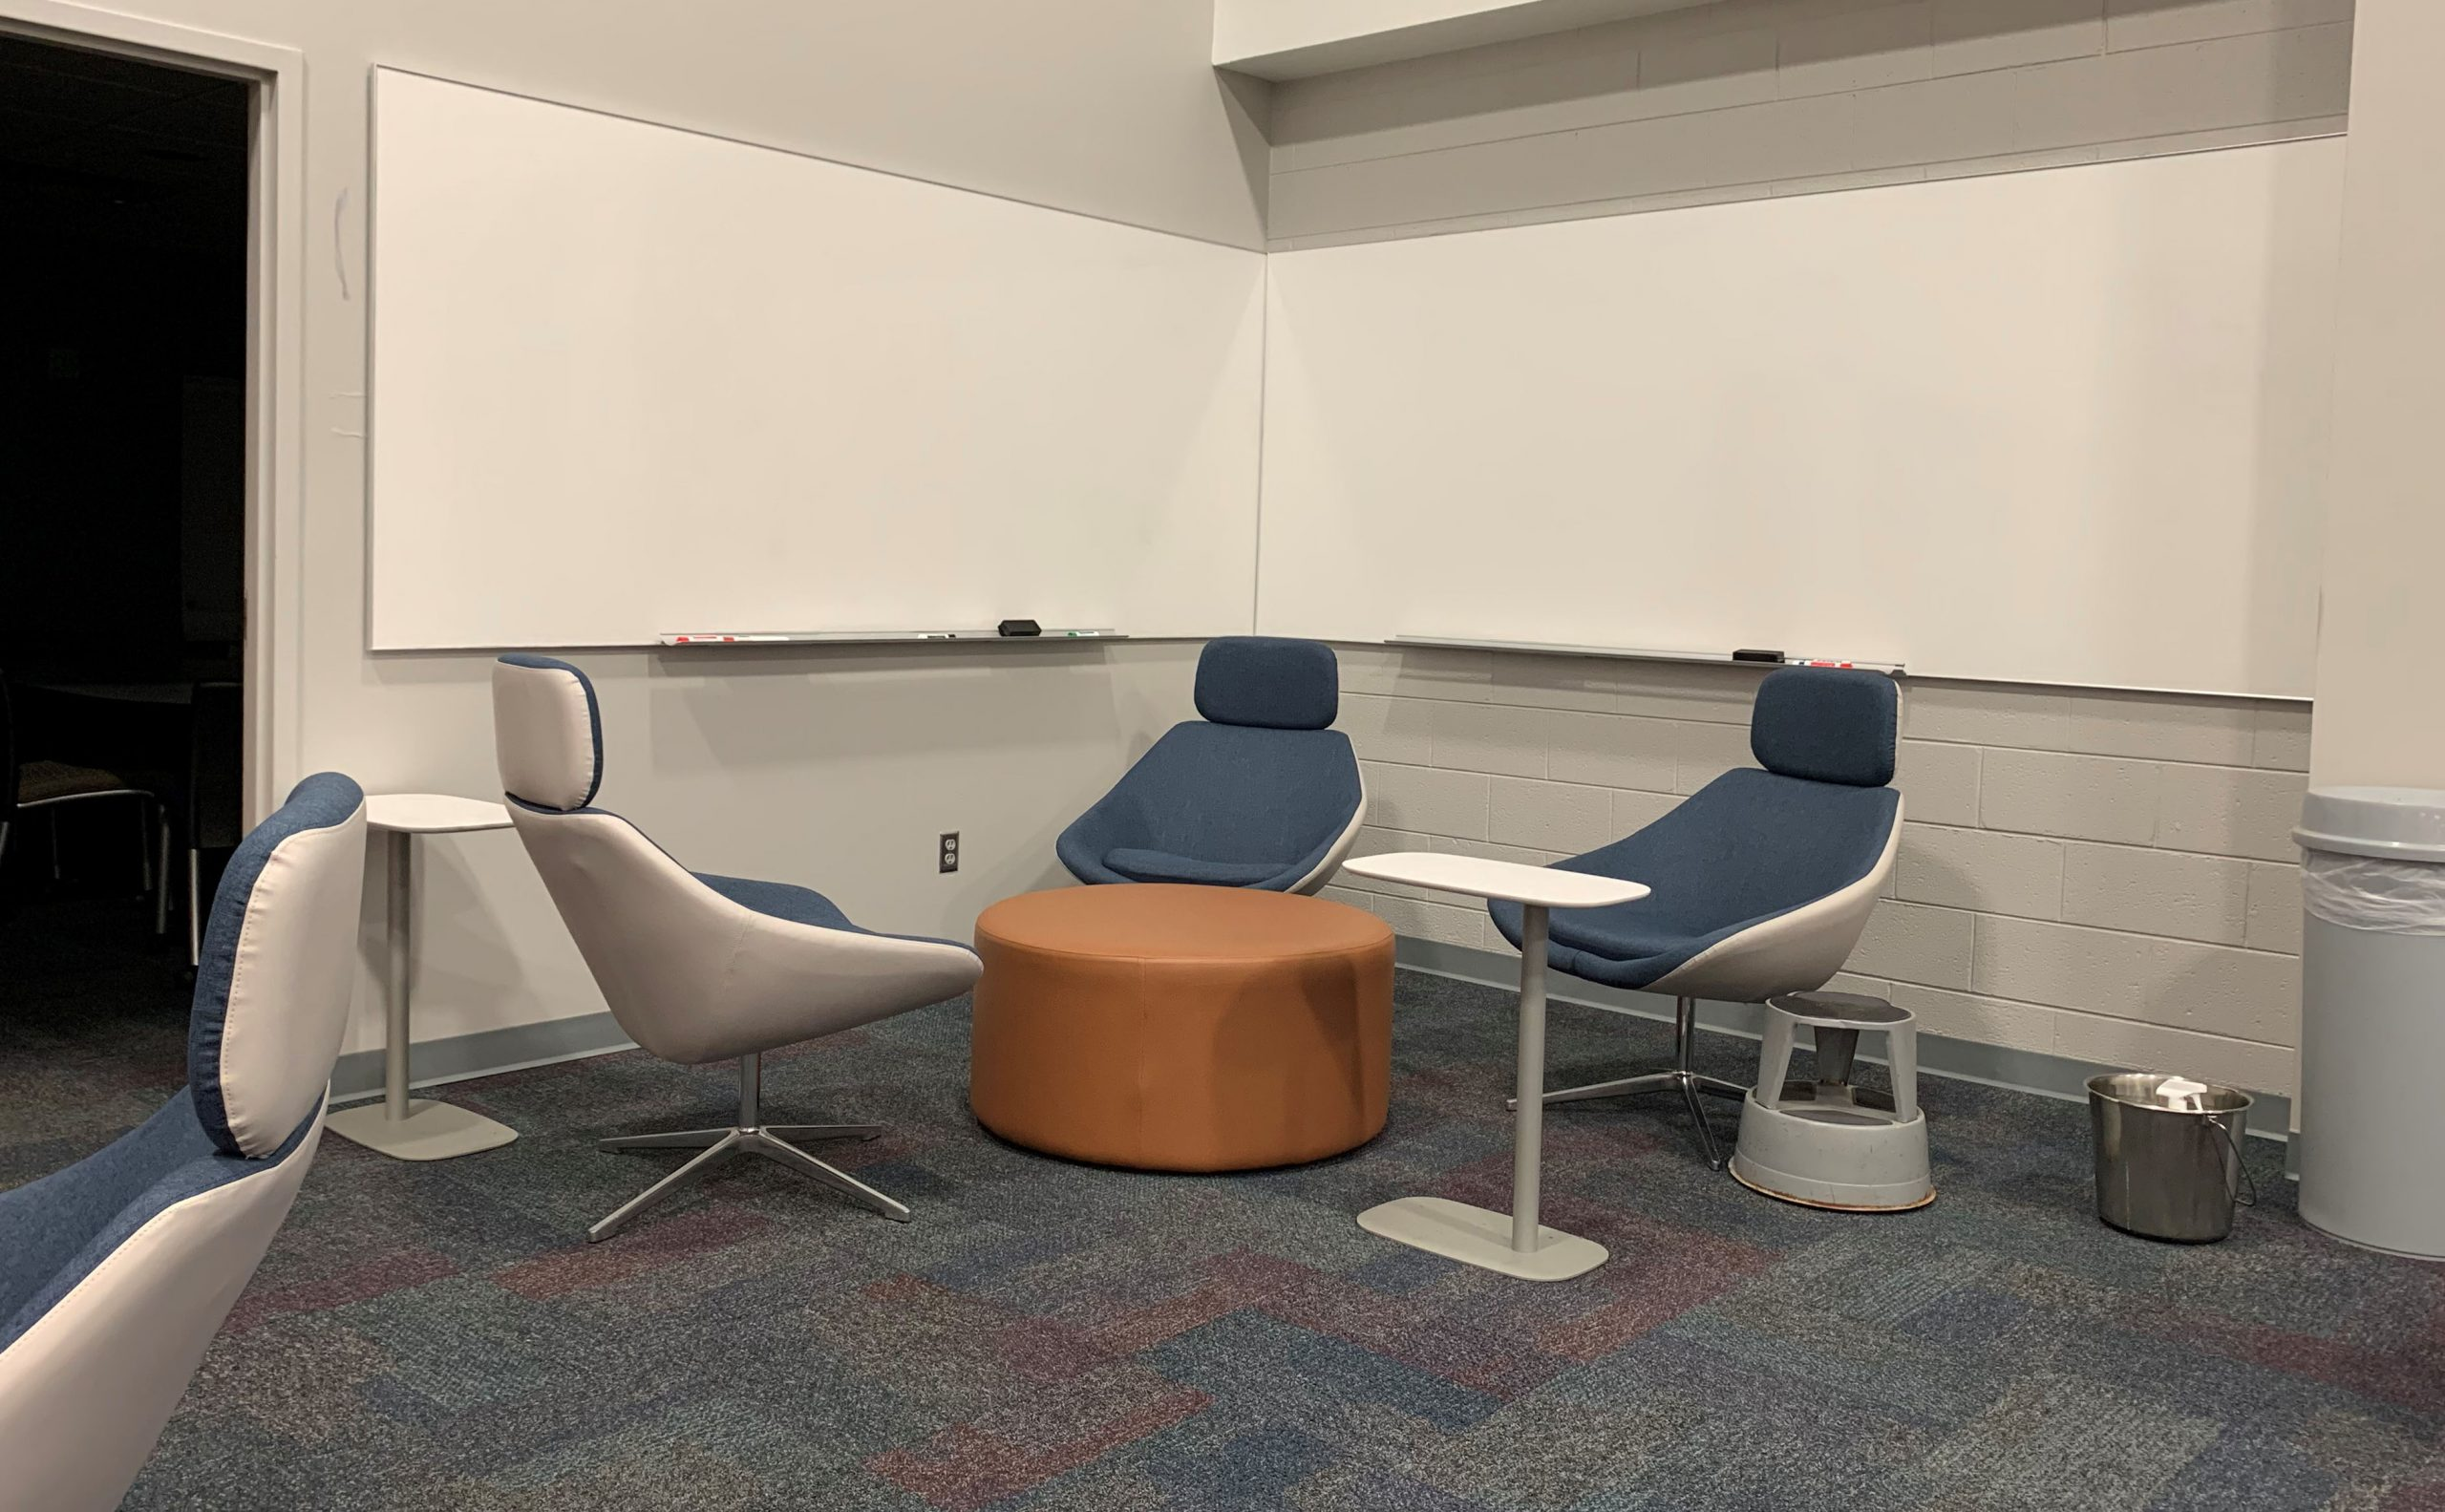 group seating area at pendergrass library university of tennessee